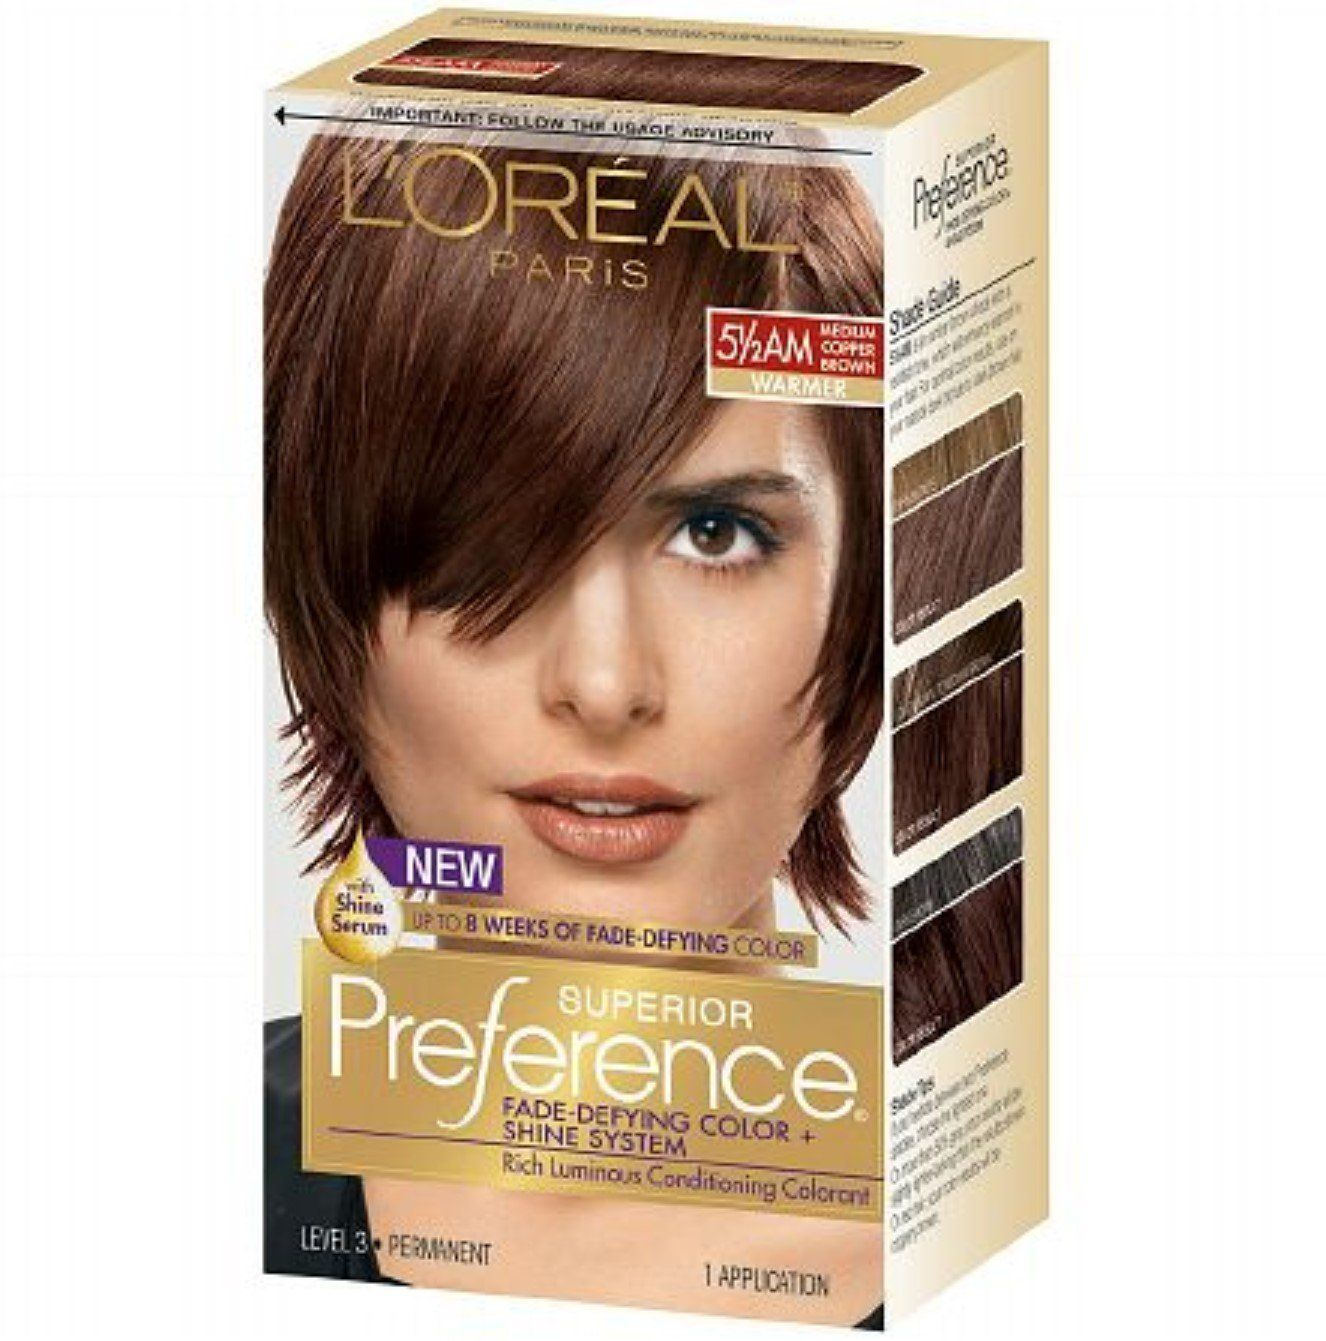 L'Oreal Superior Preference, 5-1/2 AM Medium Copper Brown 1 ea (Pack of 4) *** Learn more by visiting the image link.